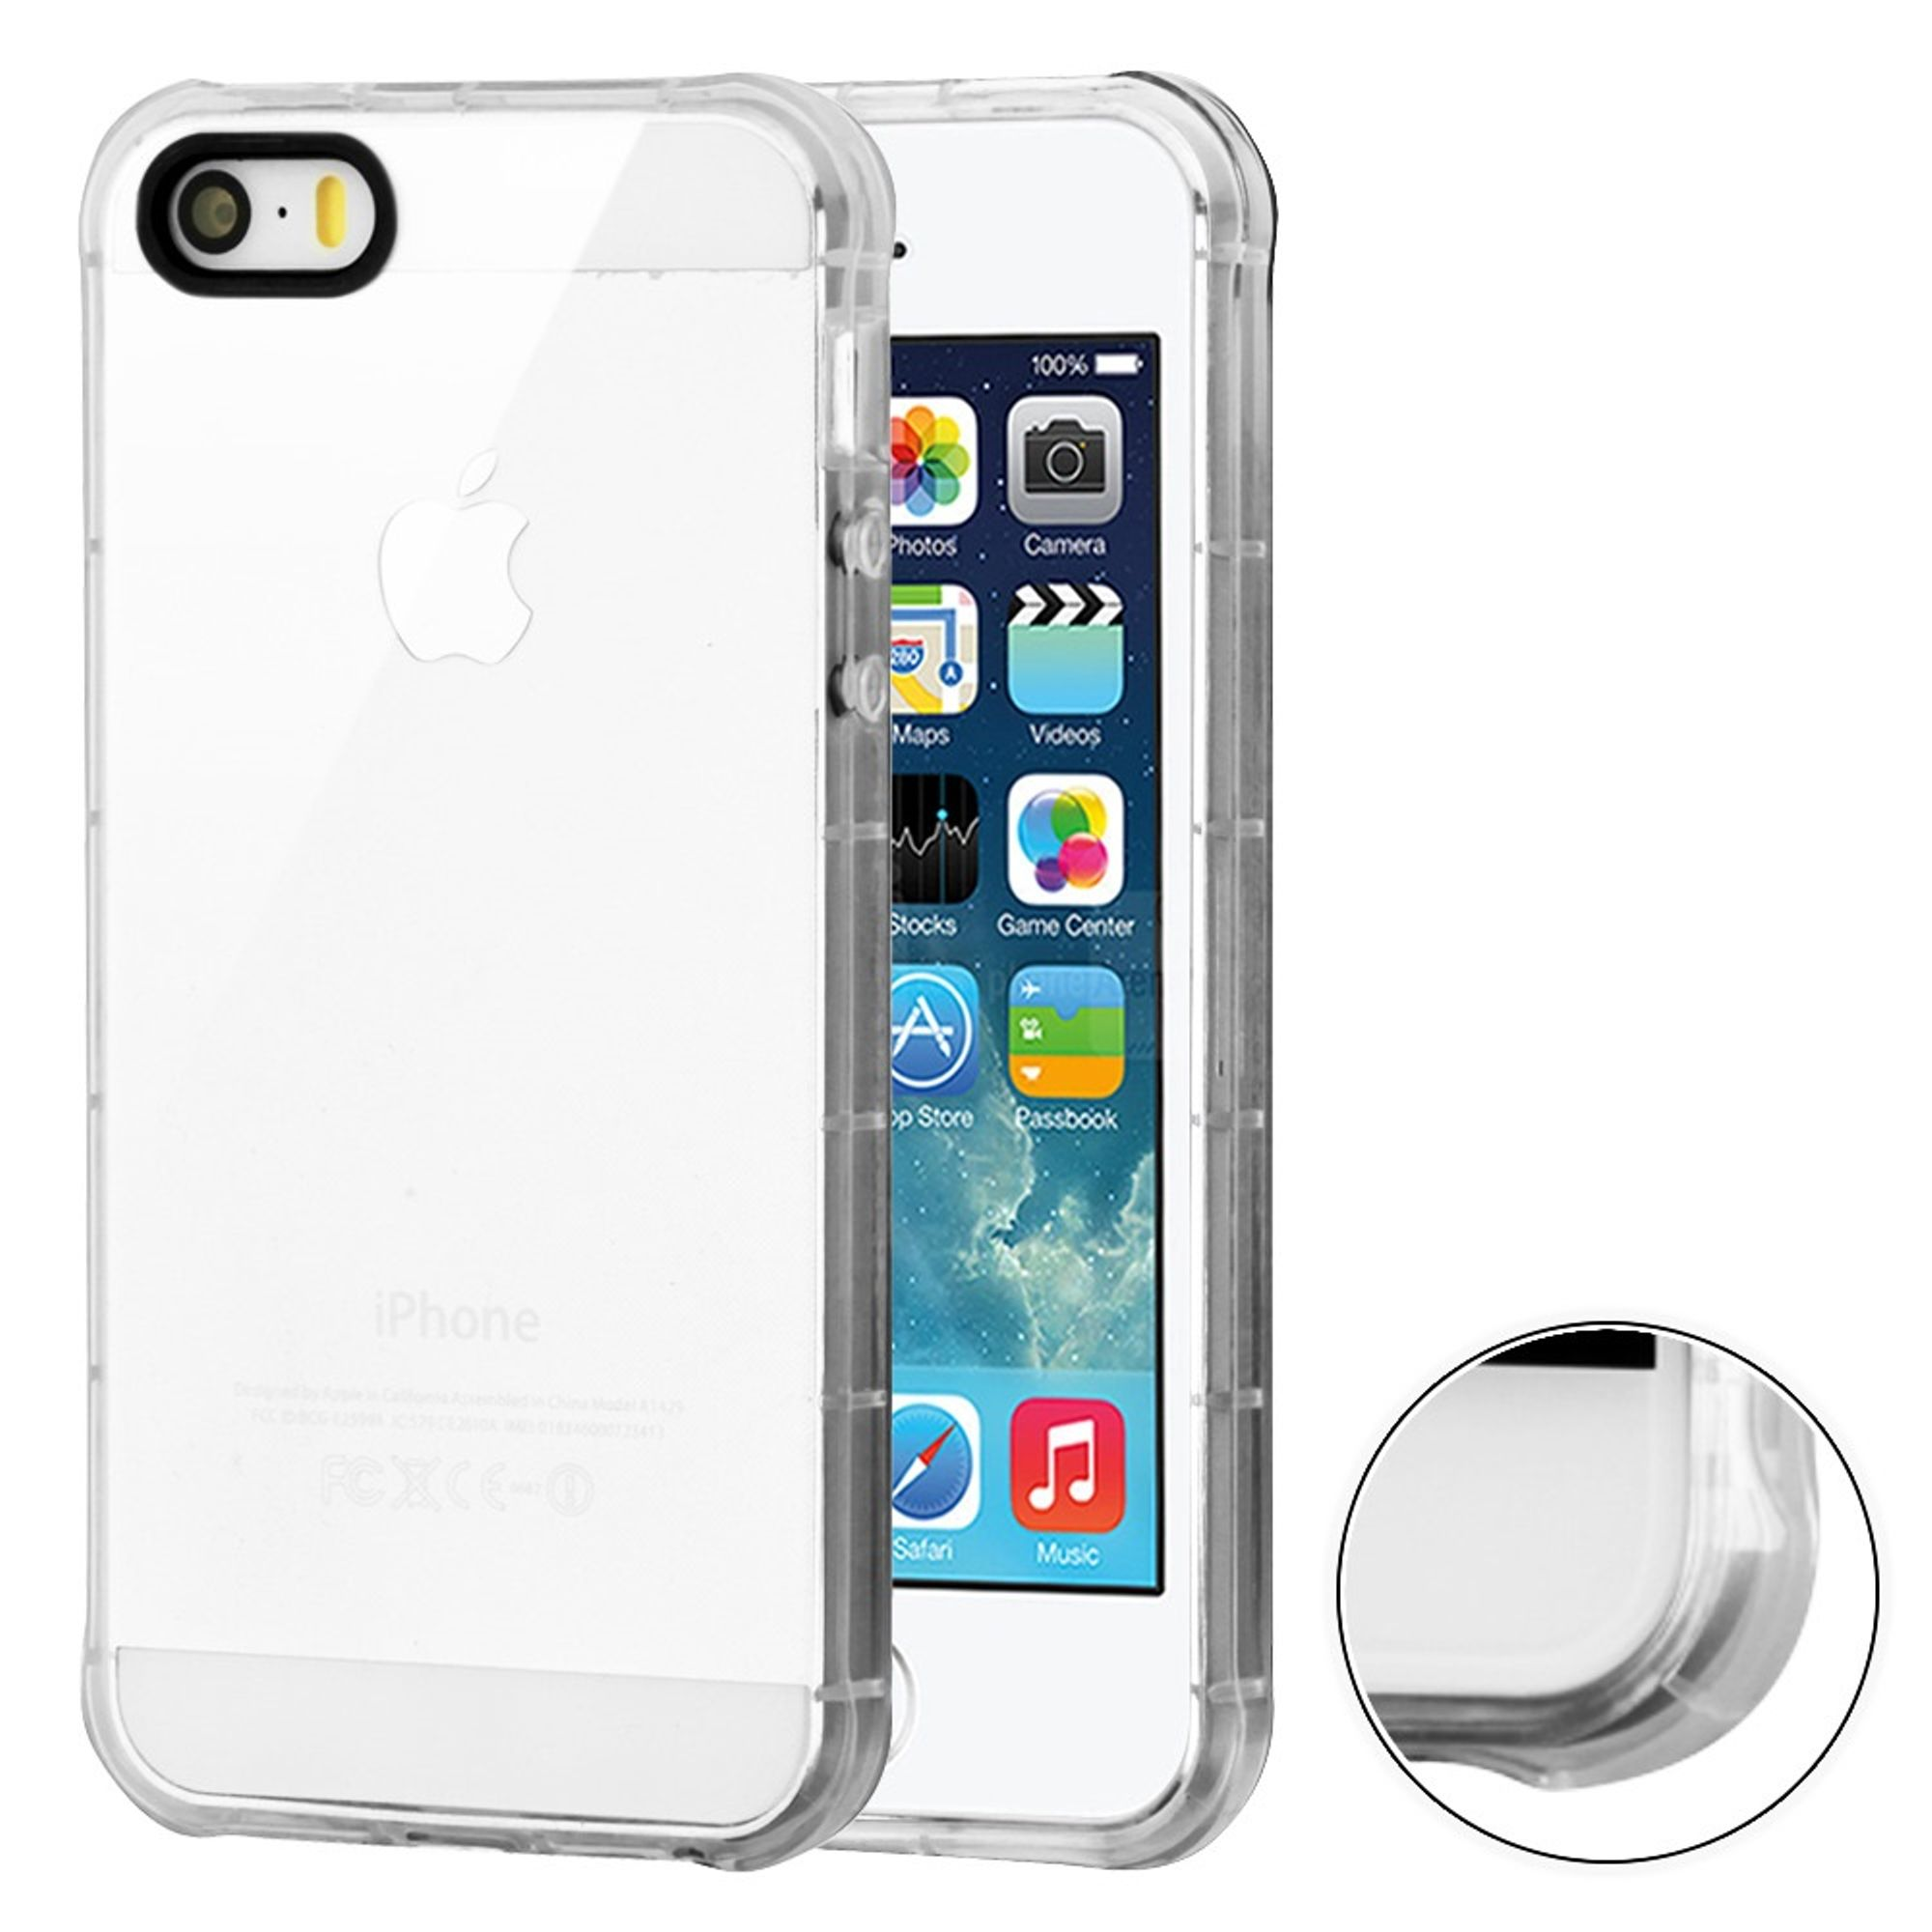 iPhone SE Case Clear, by MyBat TPU Rubber Candy Skin Case Cover for Apple iPhone 5/5S/SE - Clear